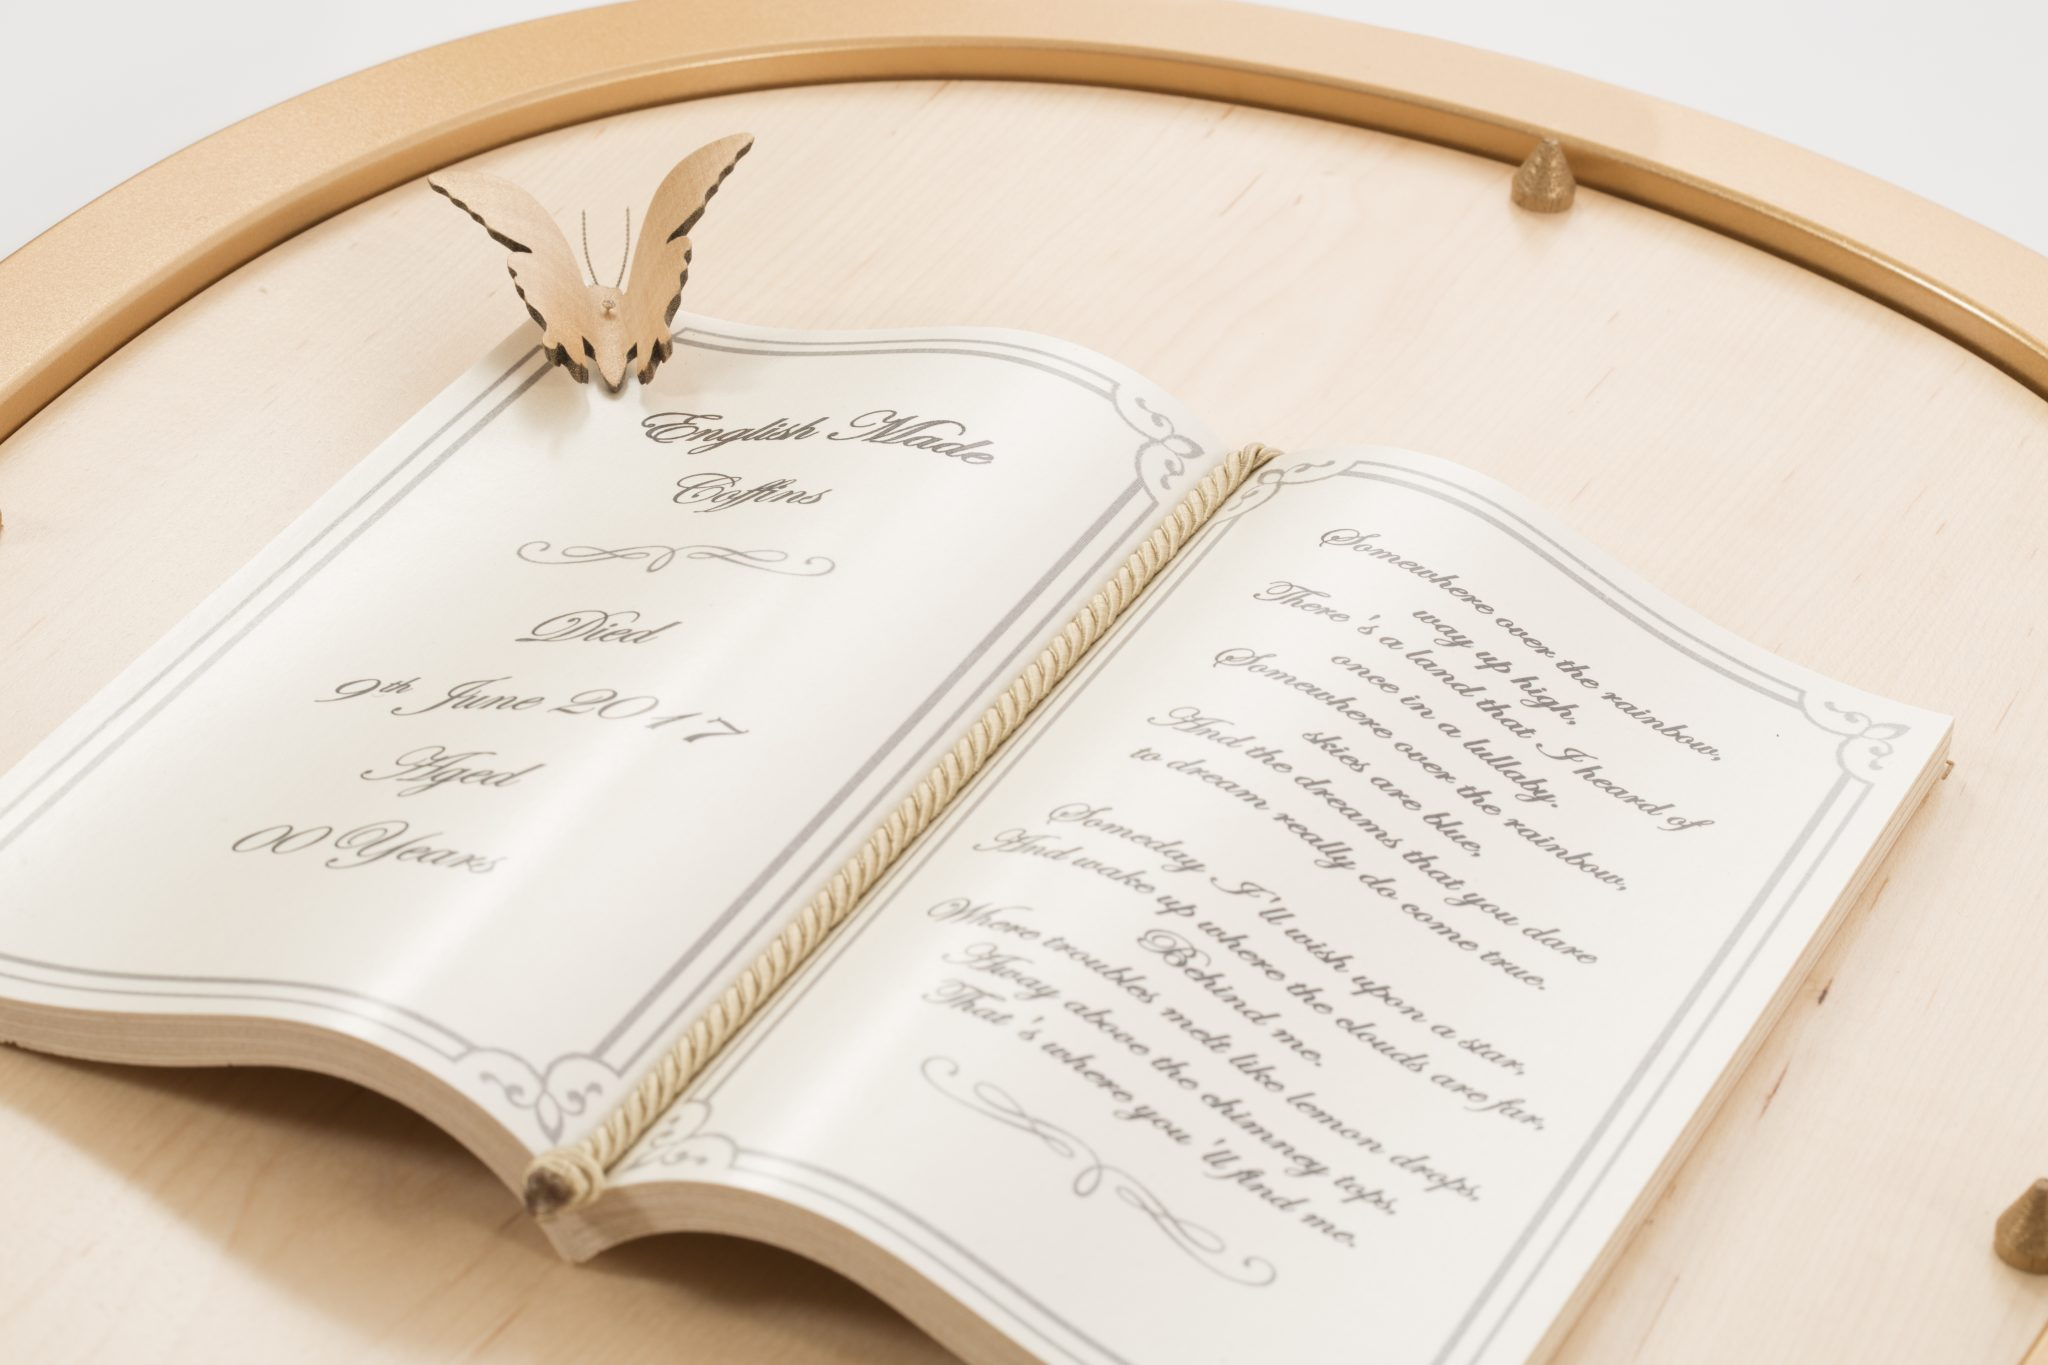 Book and butterfly ornament